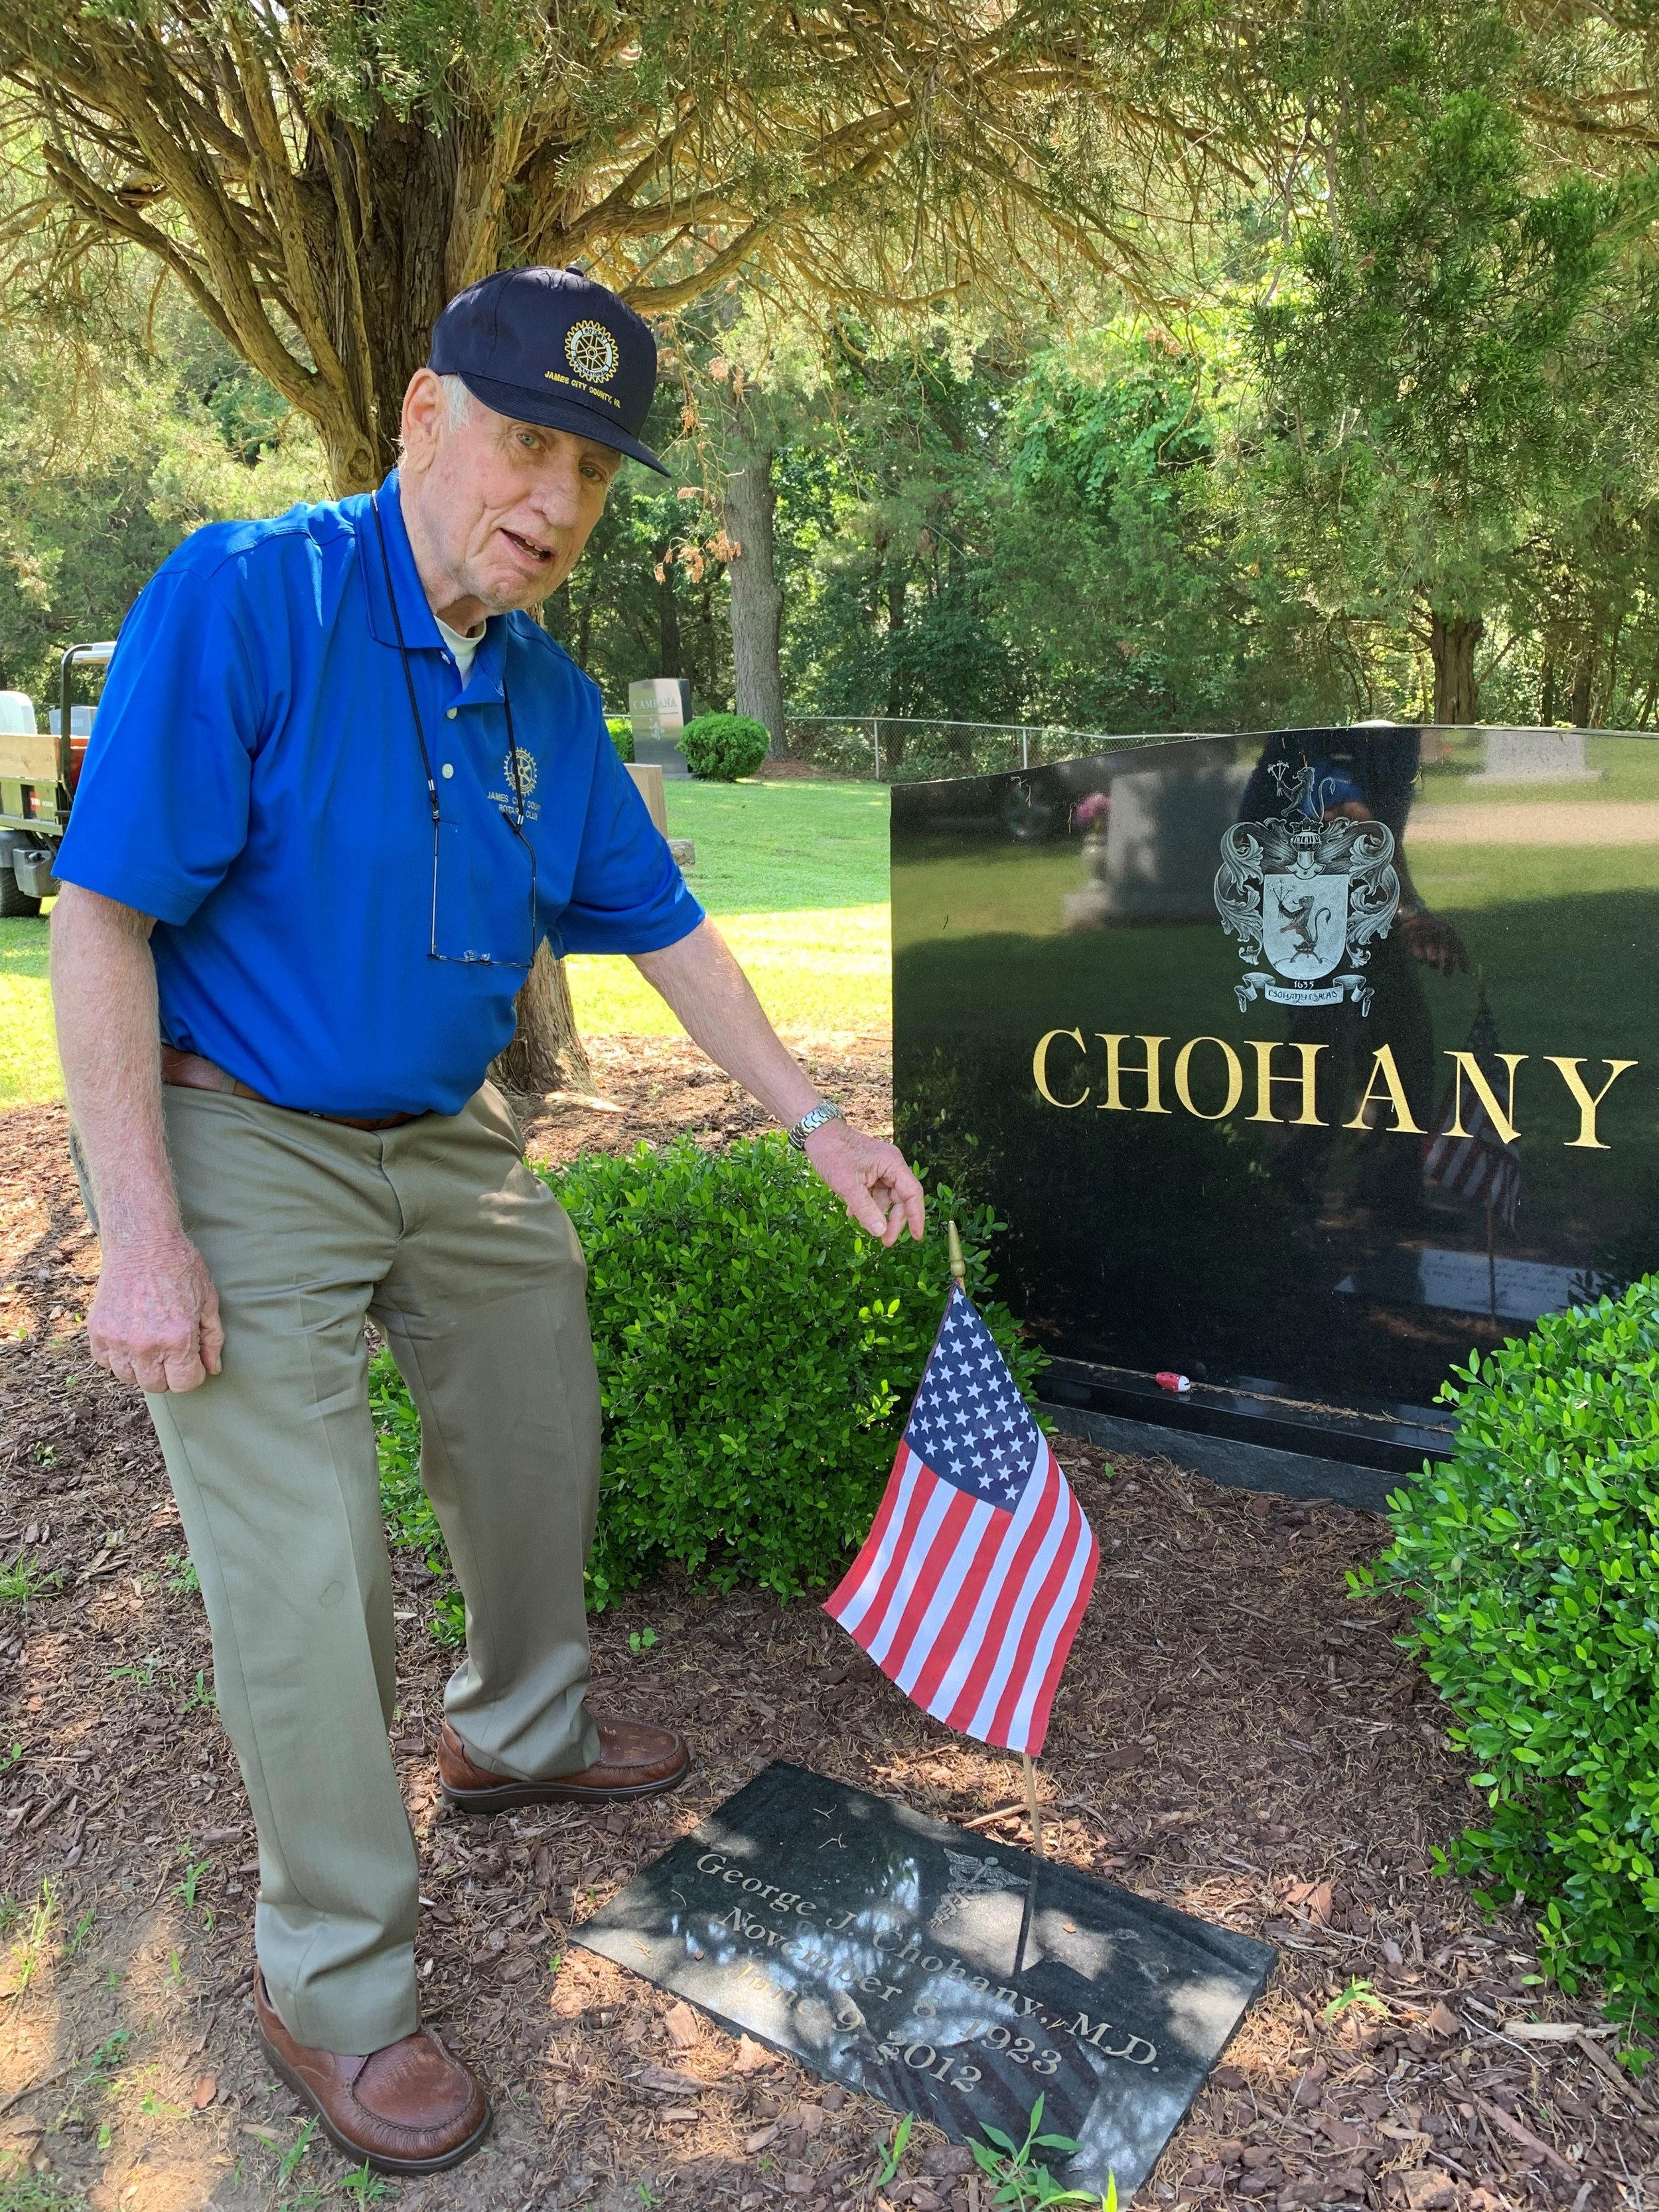 memorial day preps - Club member and veteran himself, John Bradish places a flag on a veterans grave for Memorial Day